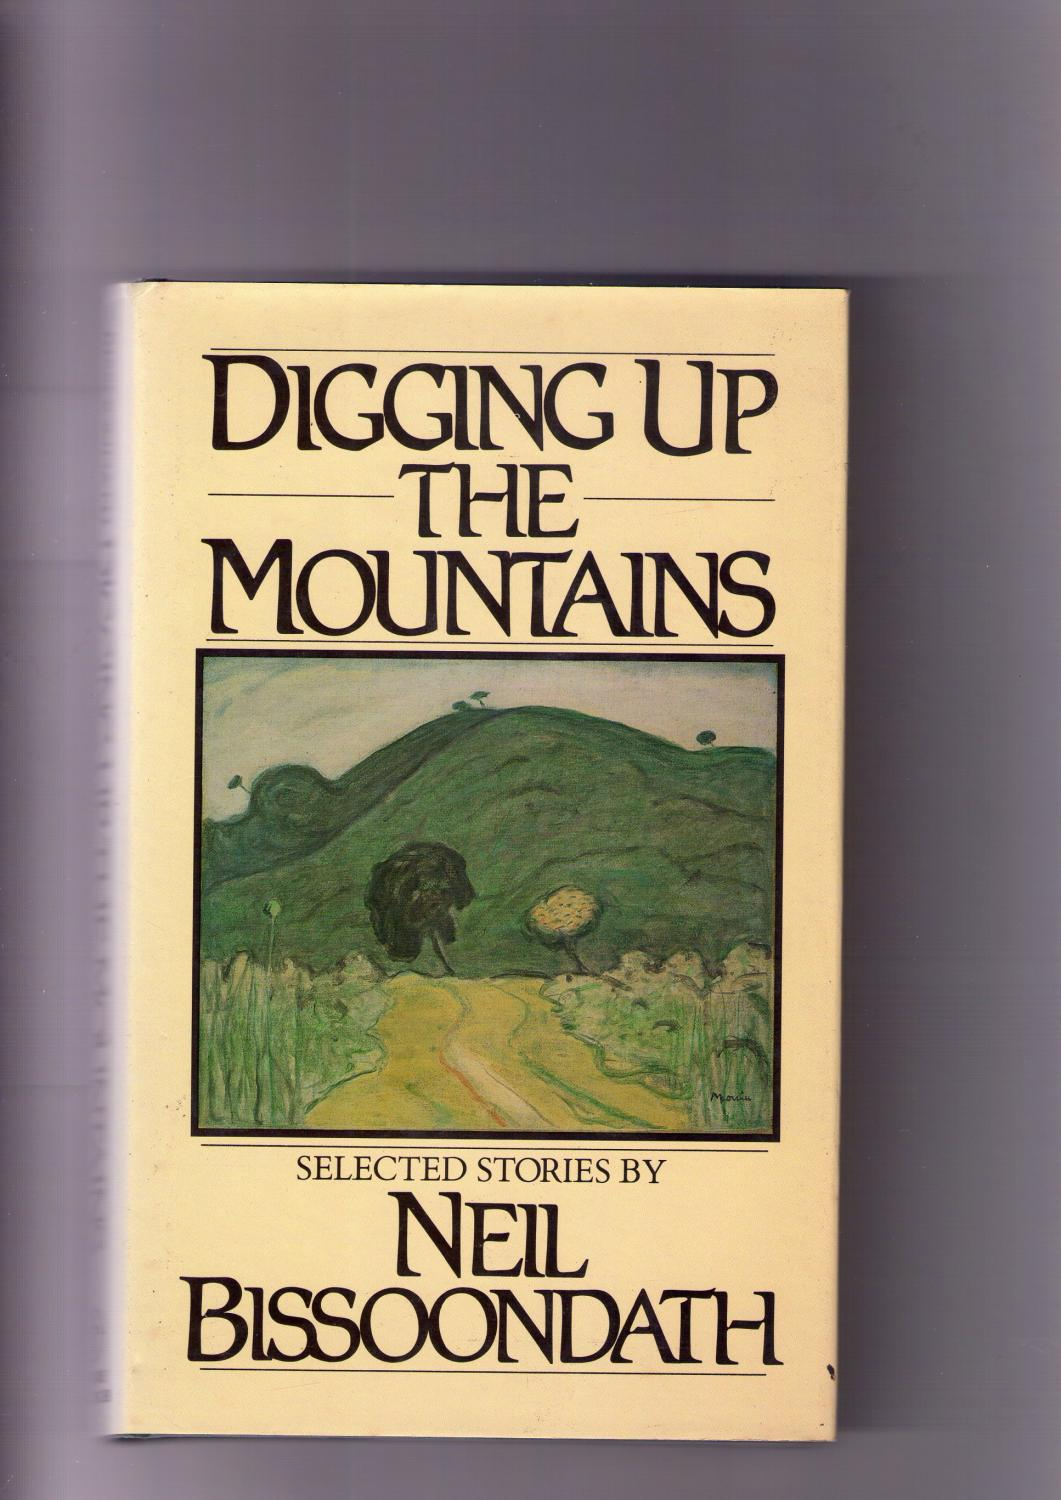 Digging Up the Mountains